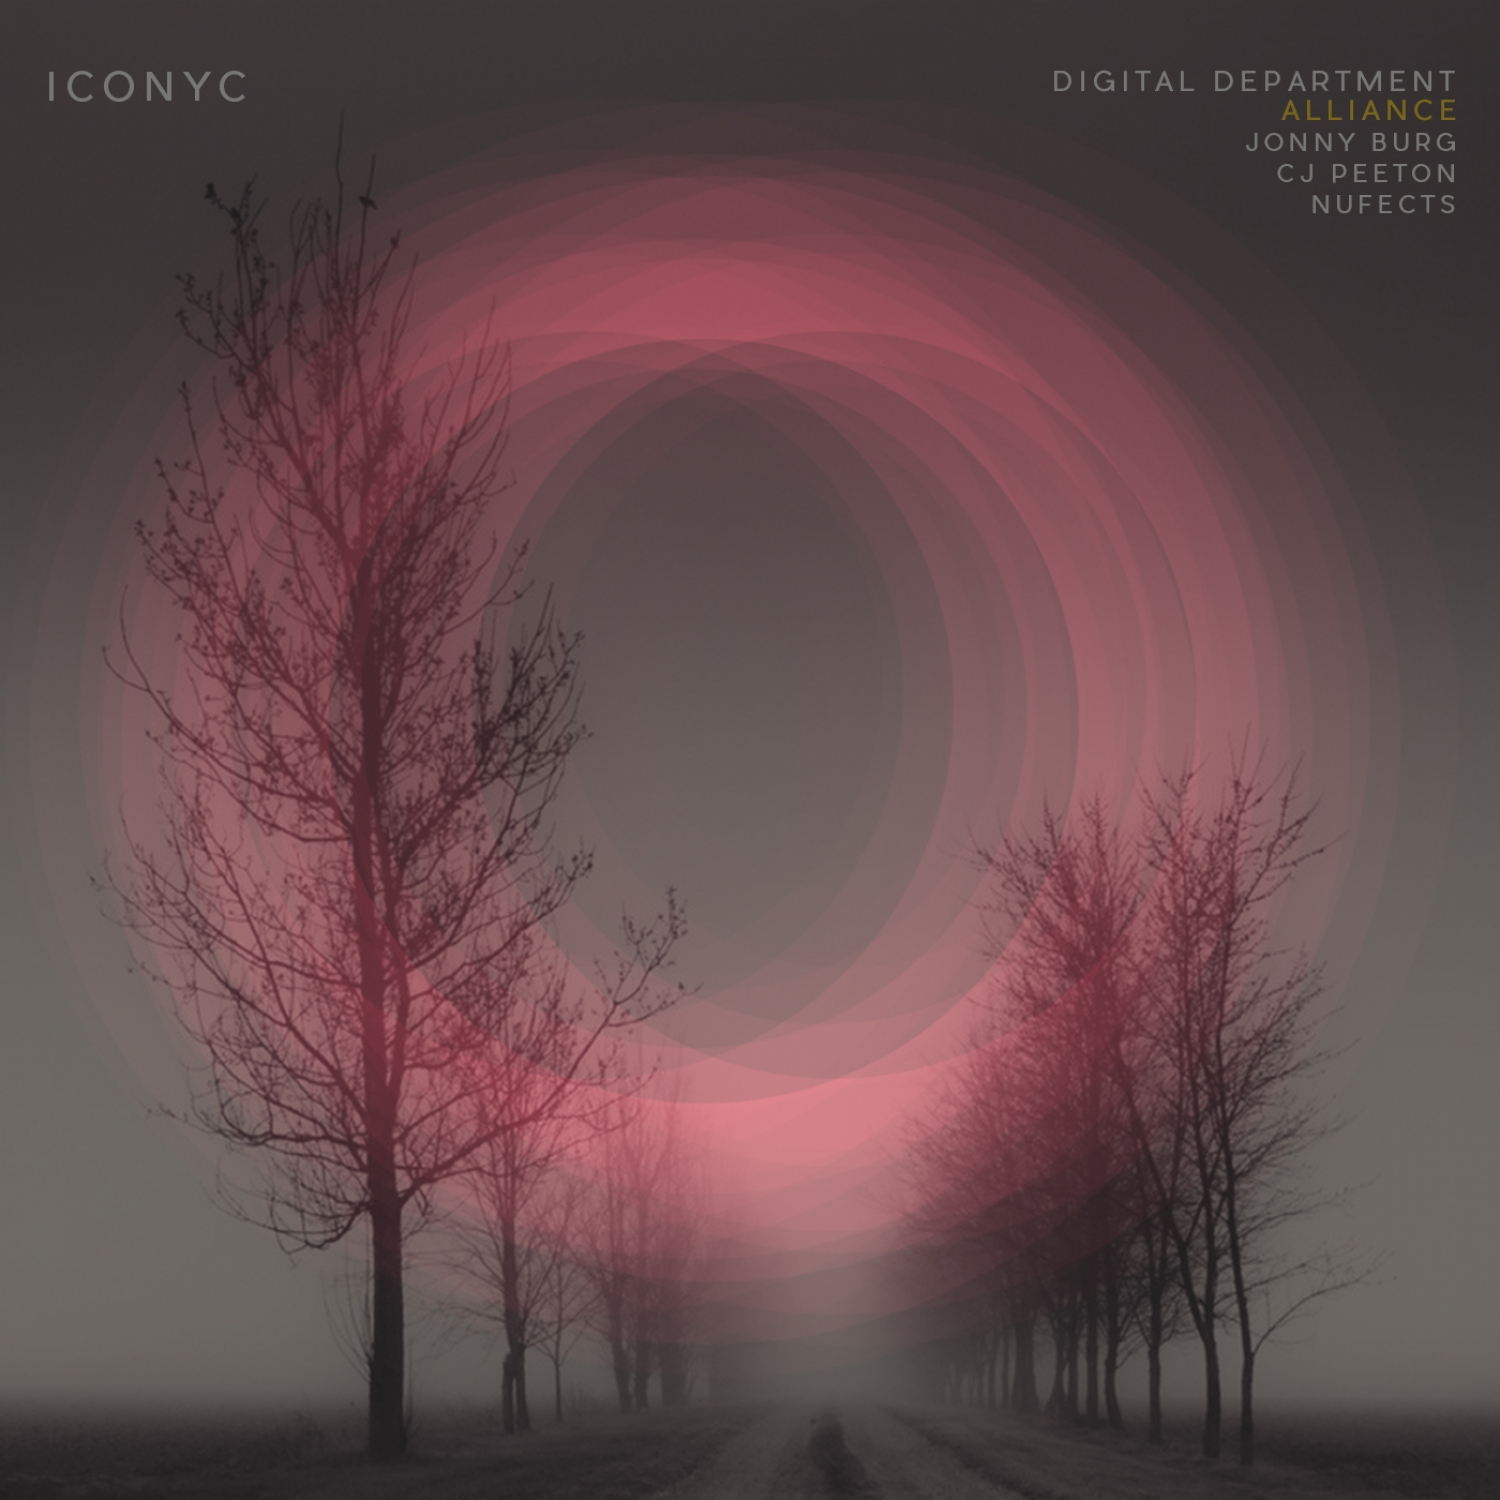 Digital Department - Alliance (ICONYC)